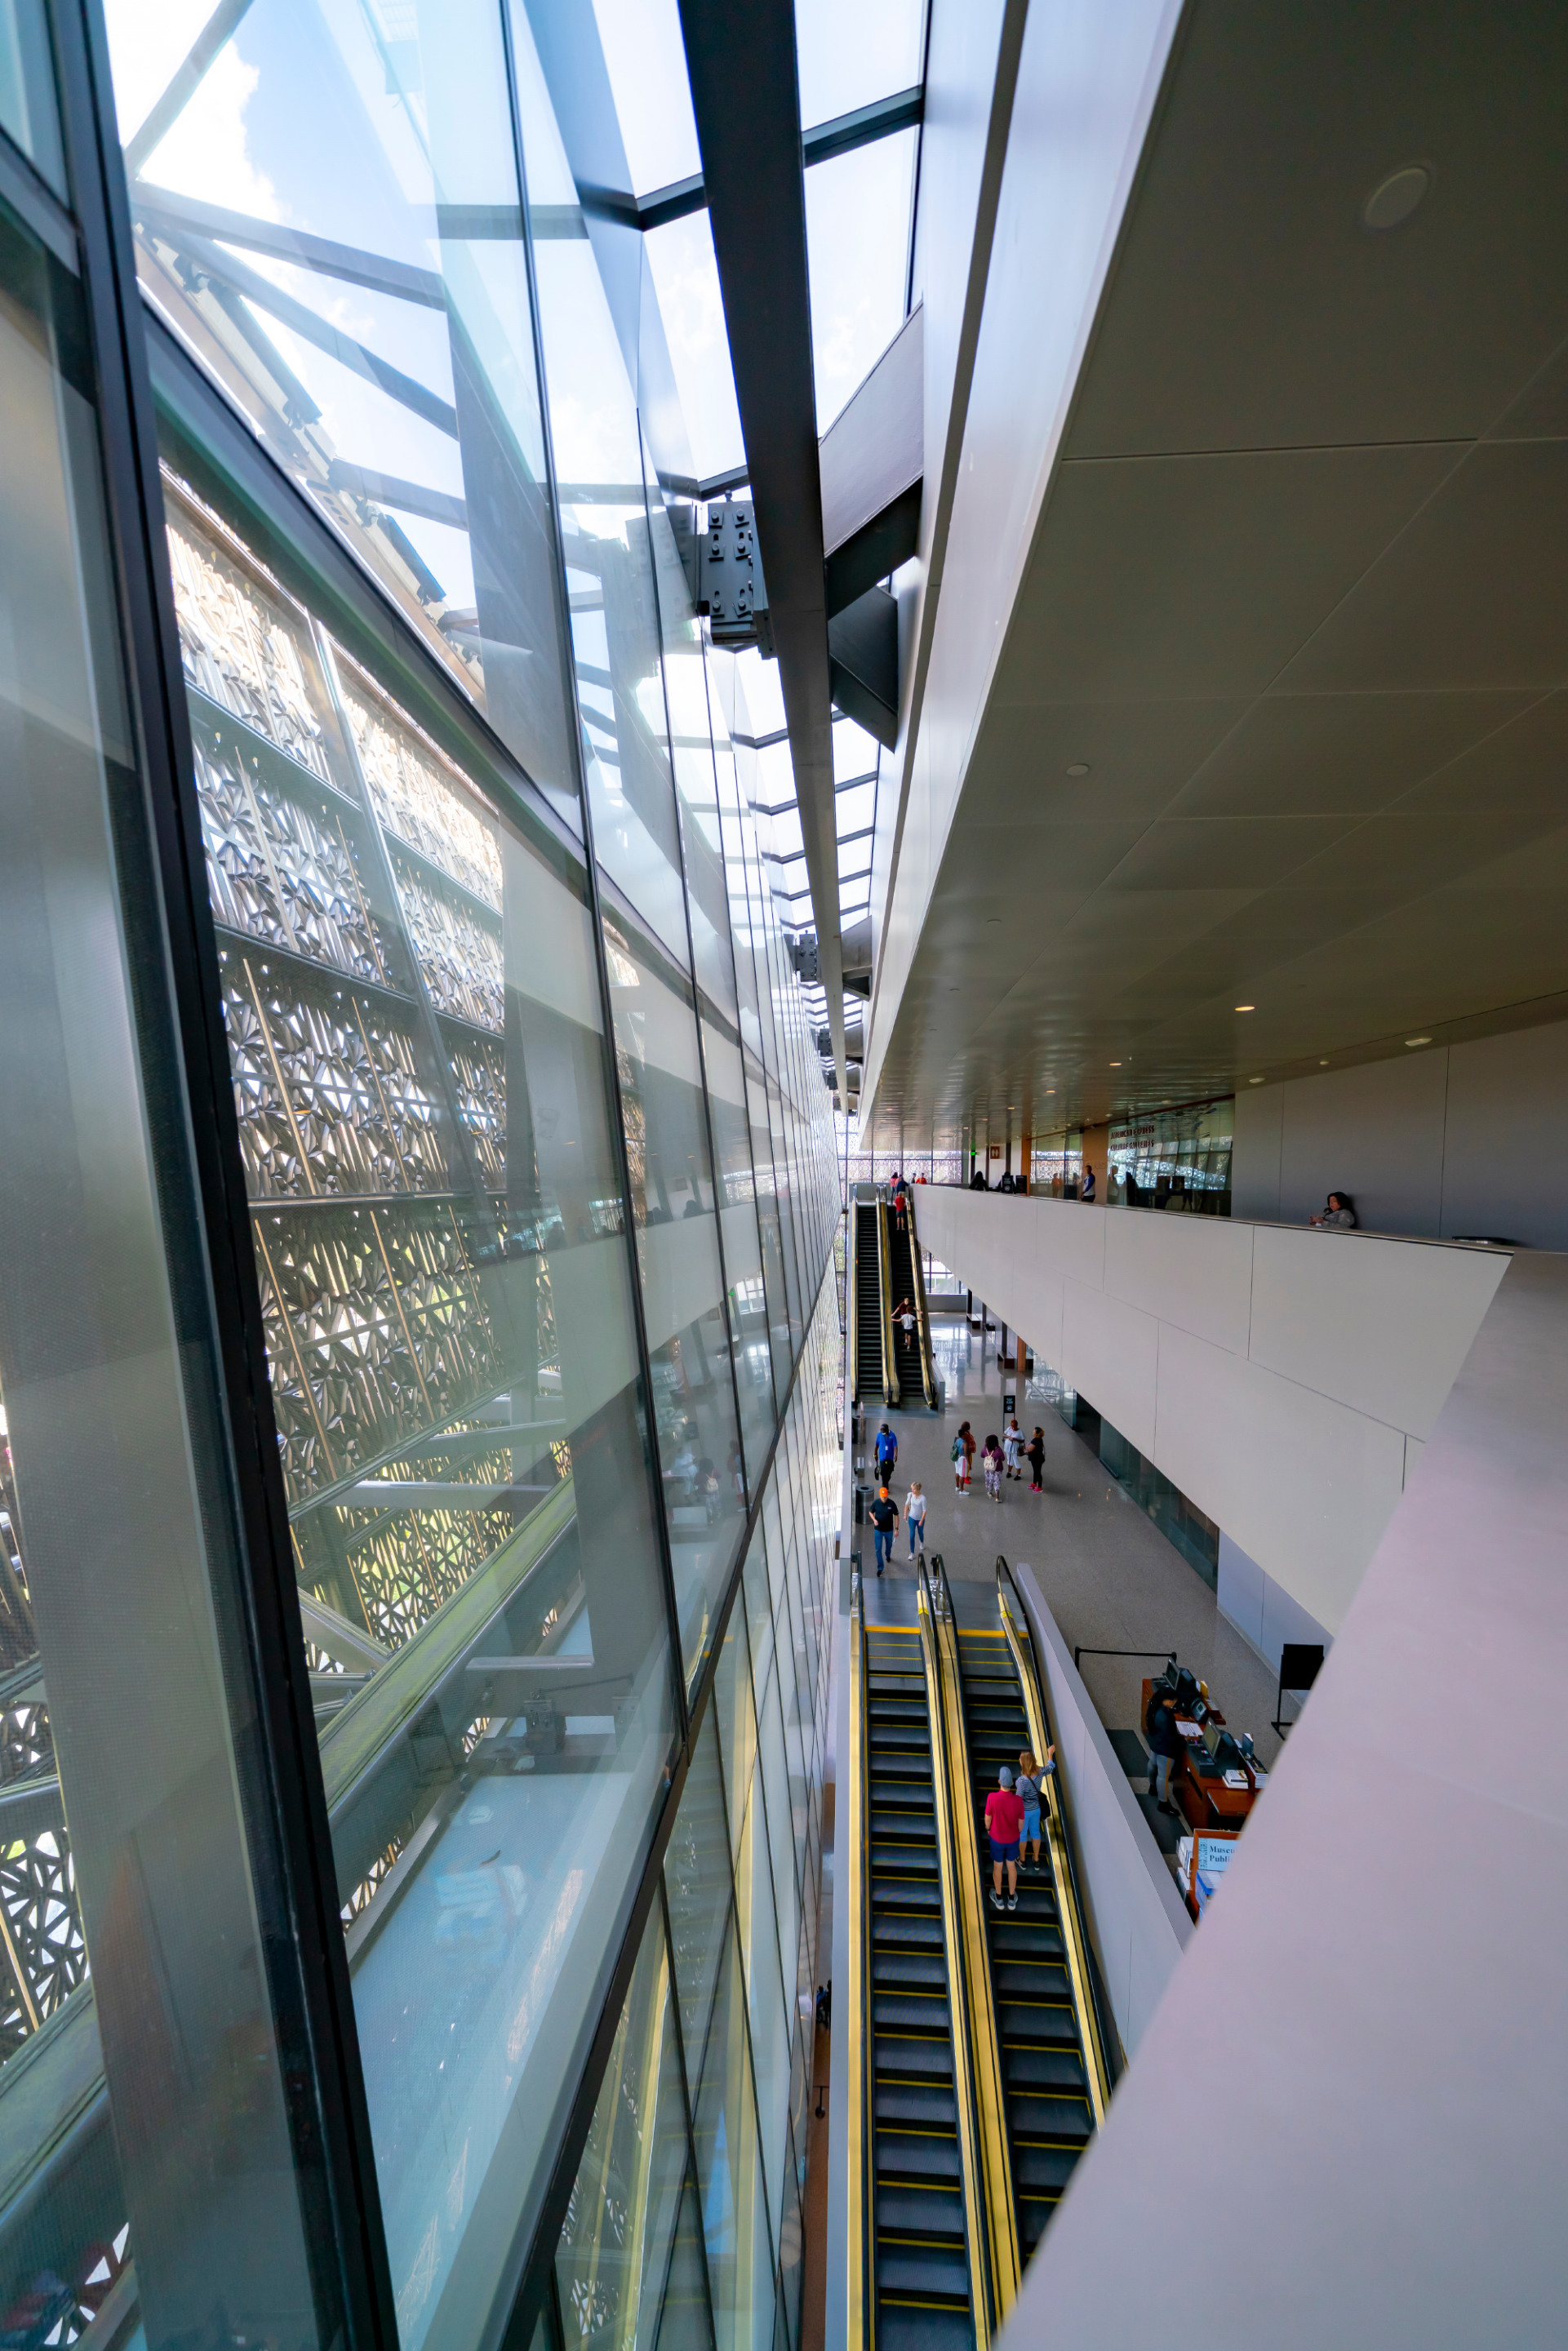 Interior of a museum between the floor plate and glass